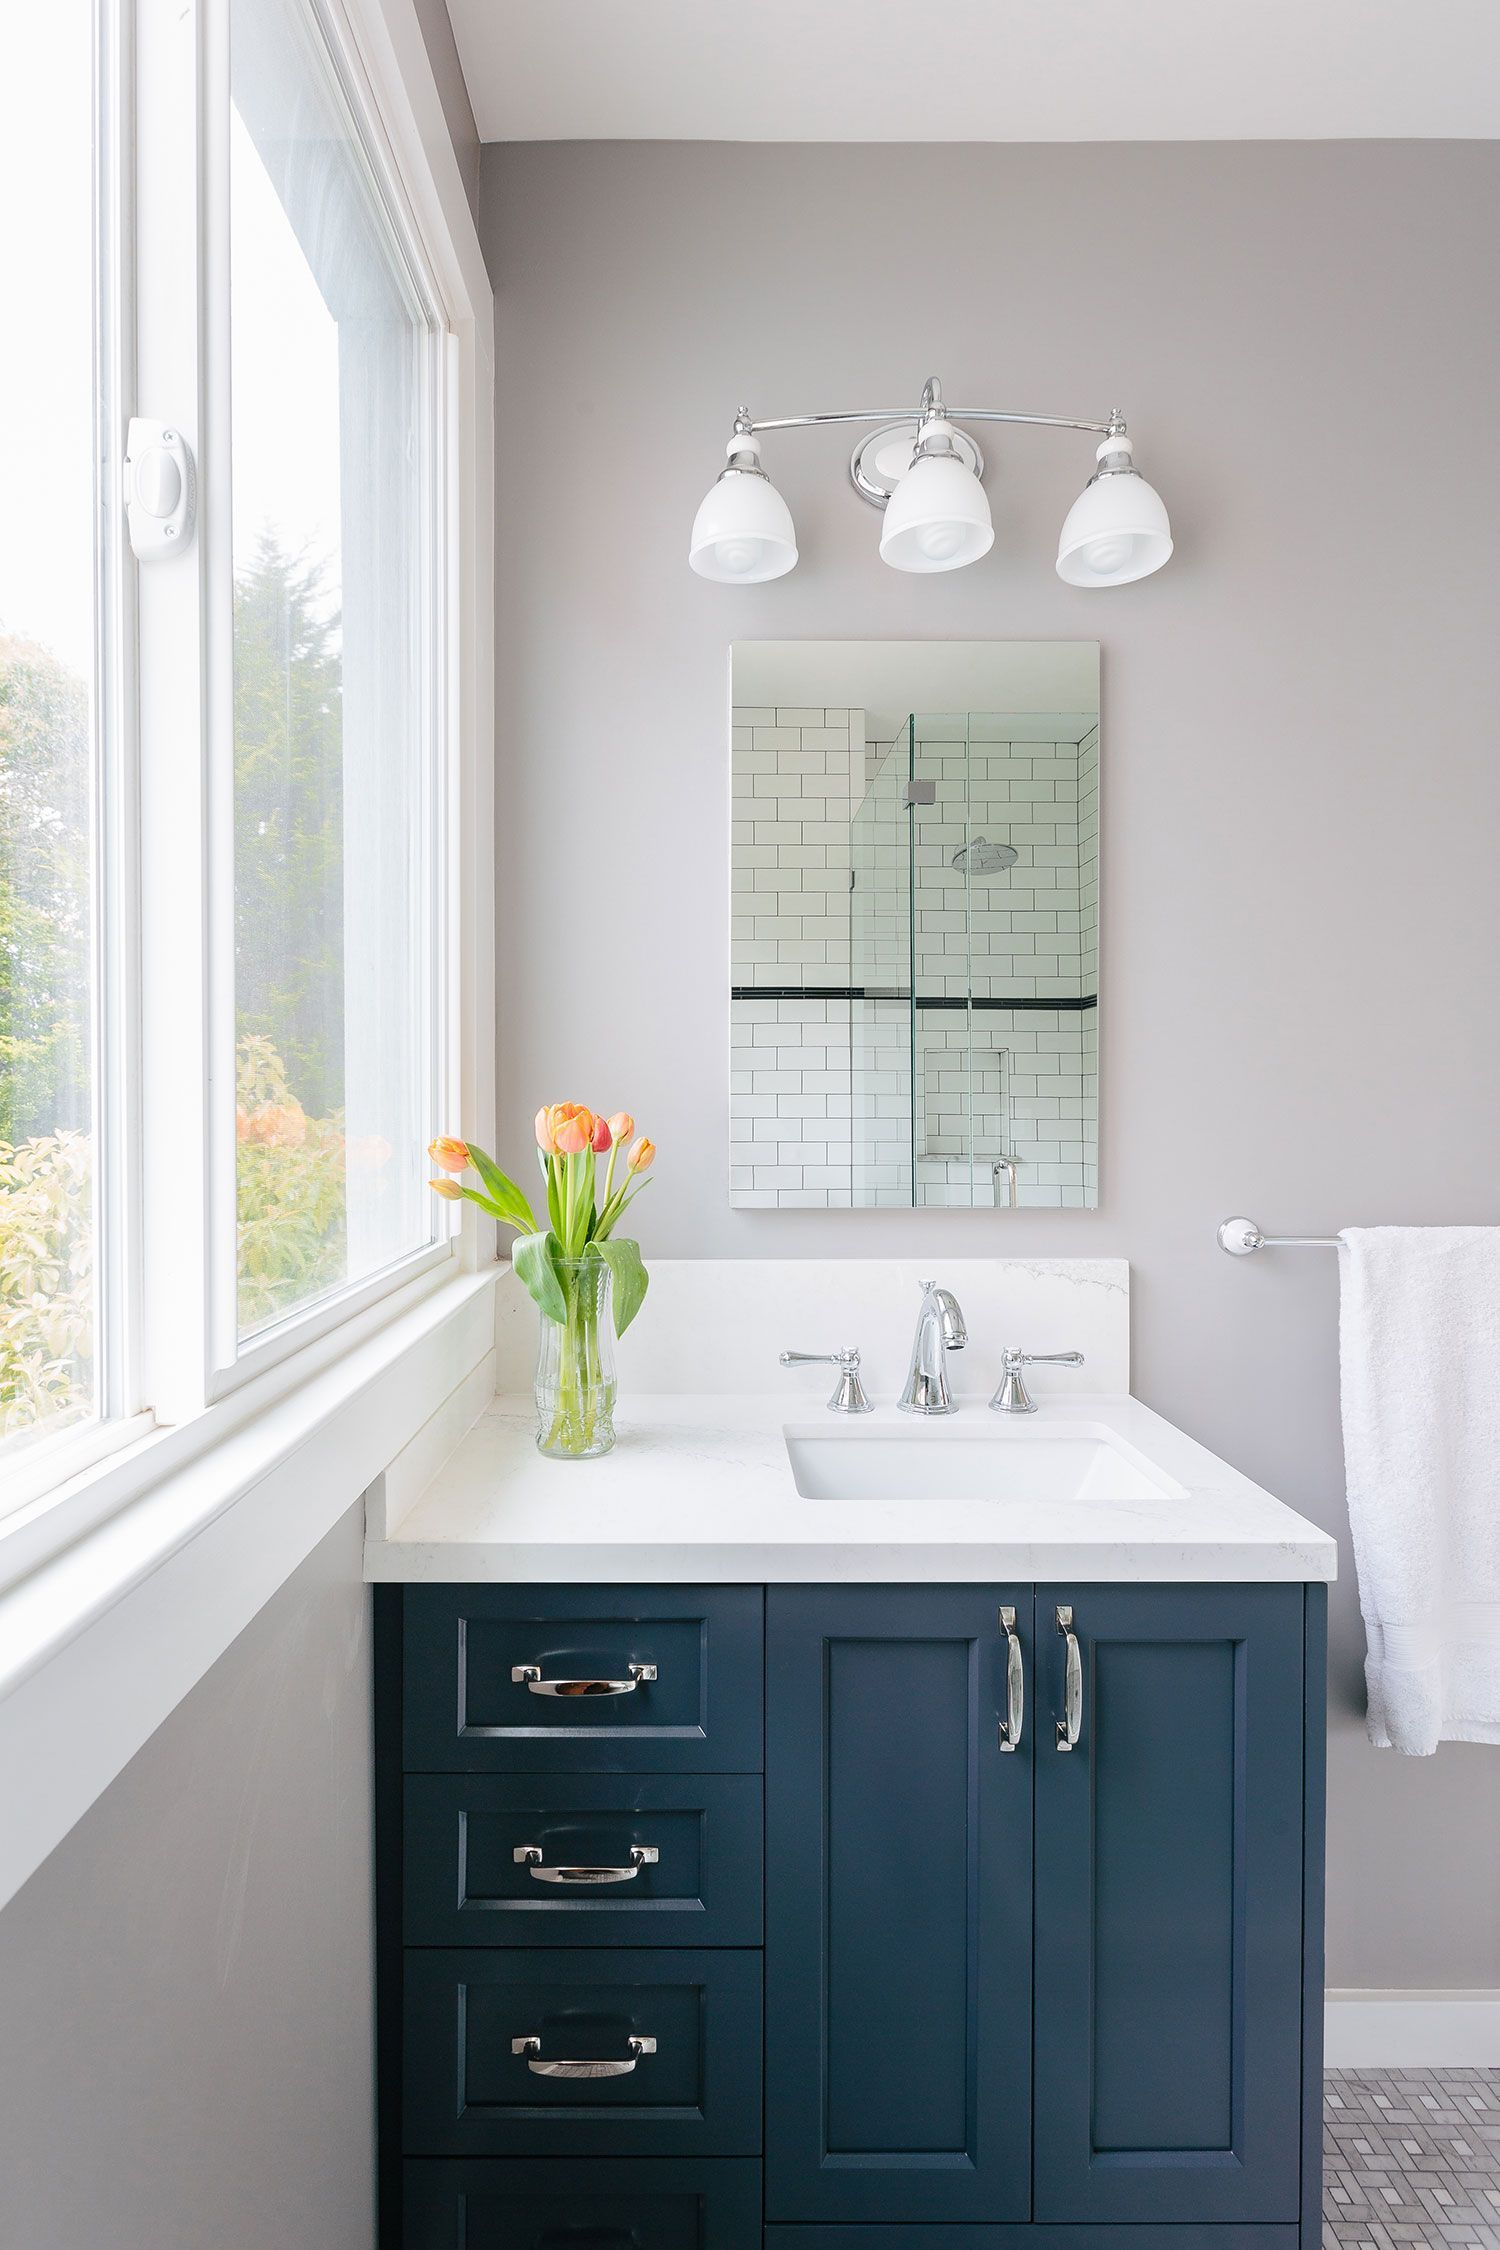 Excite Your Visitors with These 14 Adorable Half-Bathroom ...